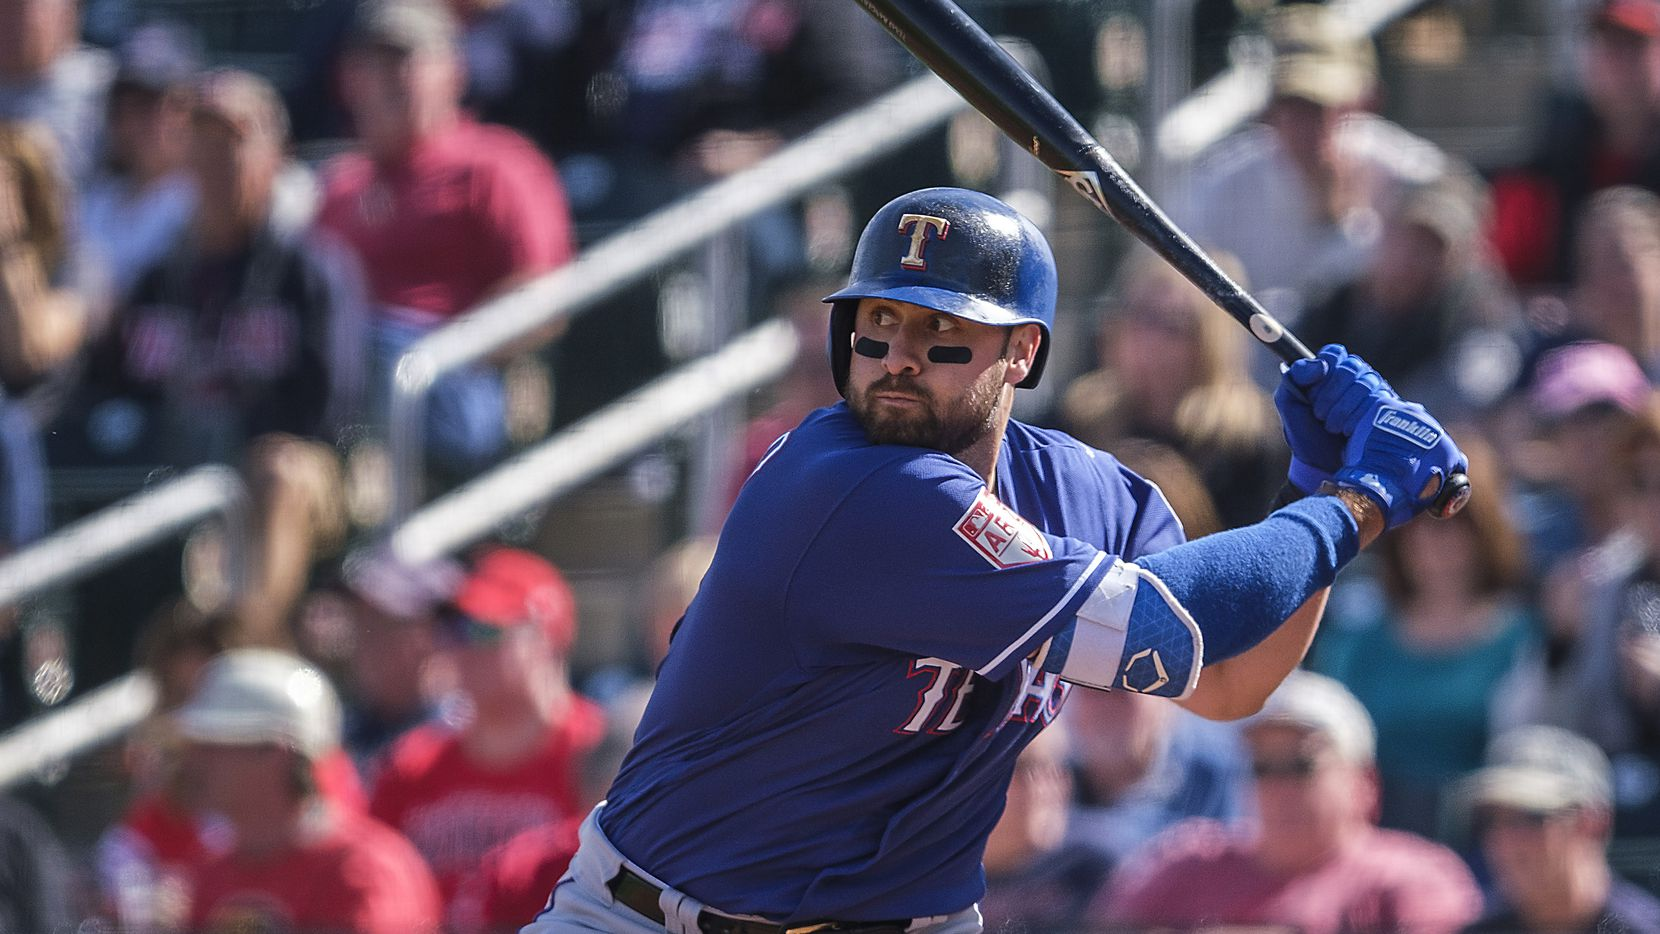 Texas Rangers outfielder Joey Gallo bats during a spring training baseball game against the Cleveland Indians on Monday, Feb. 25, 2019, in Goodyear, Ariz.. (Smiley N. Pool/The Dallas Morning News)